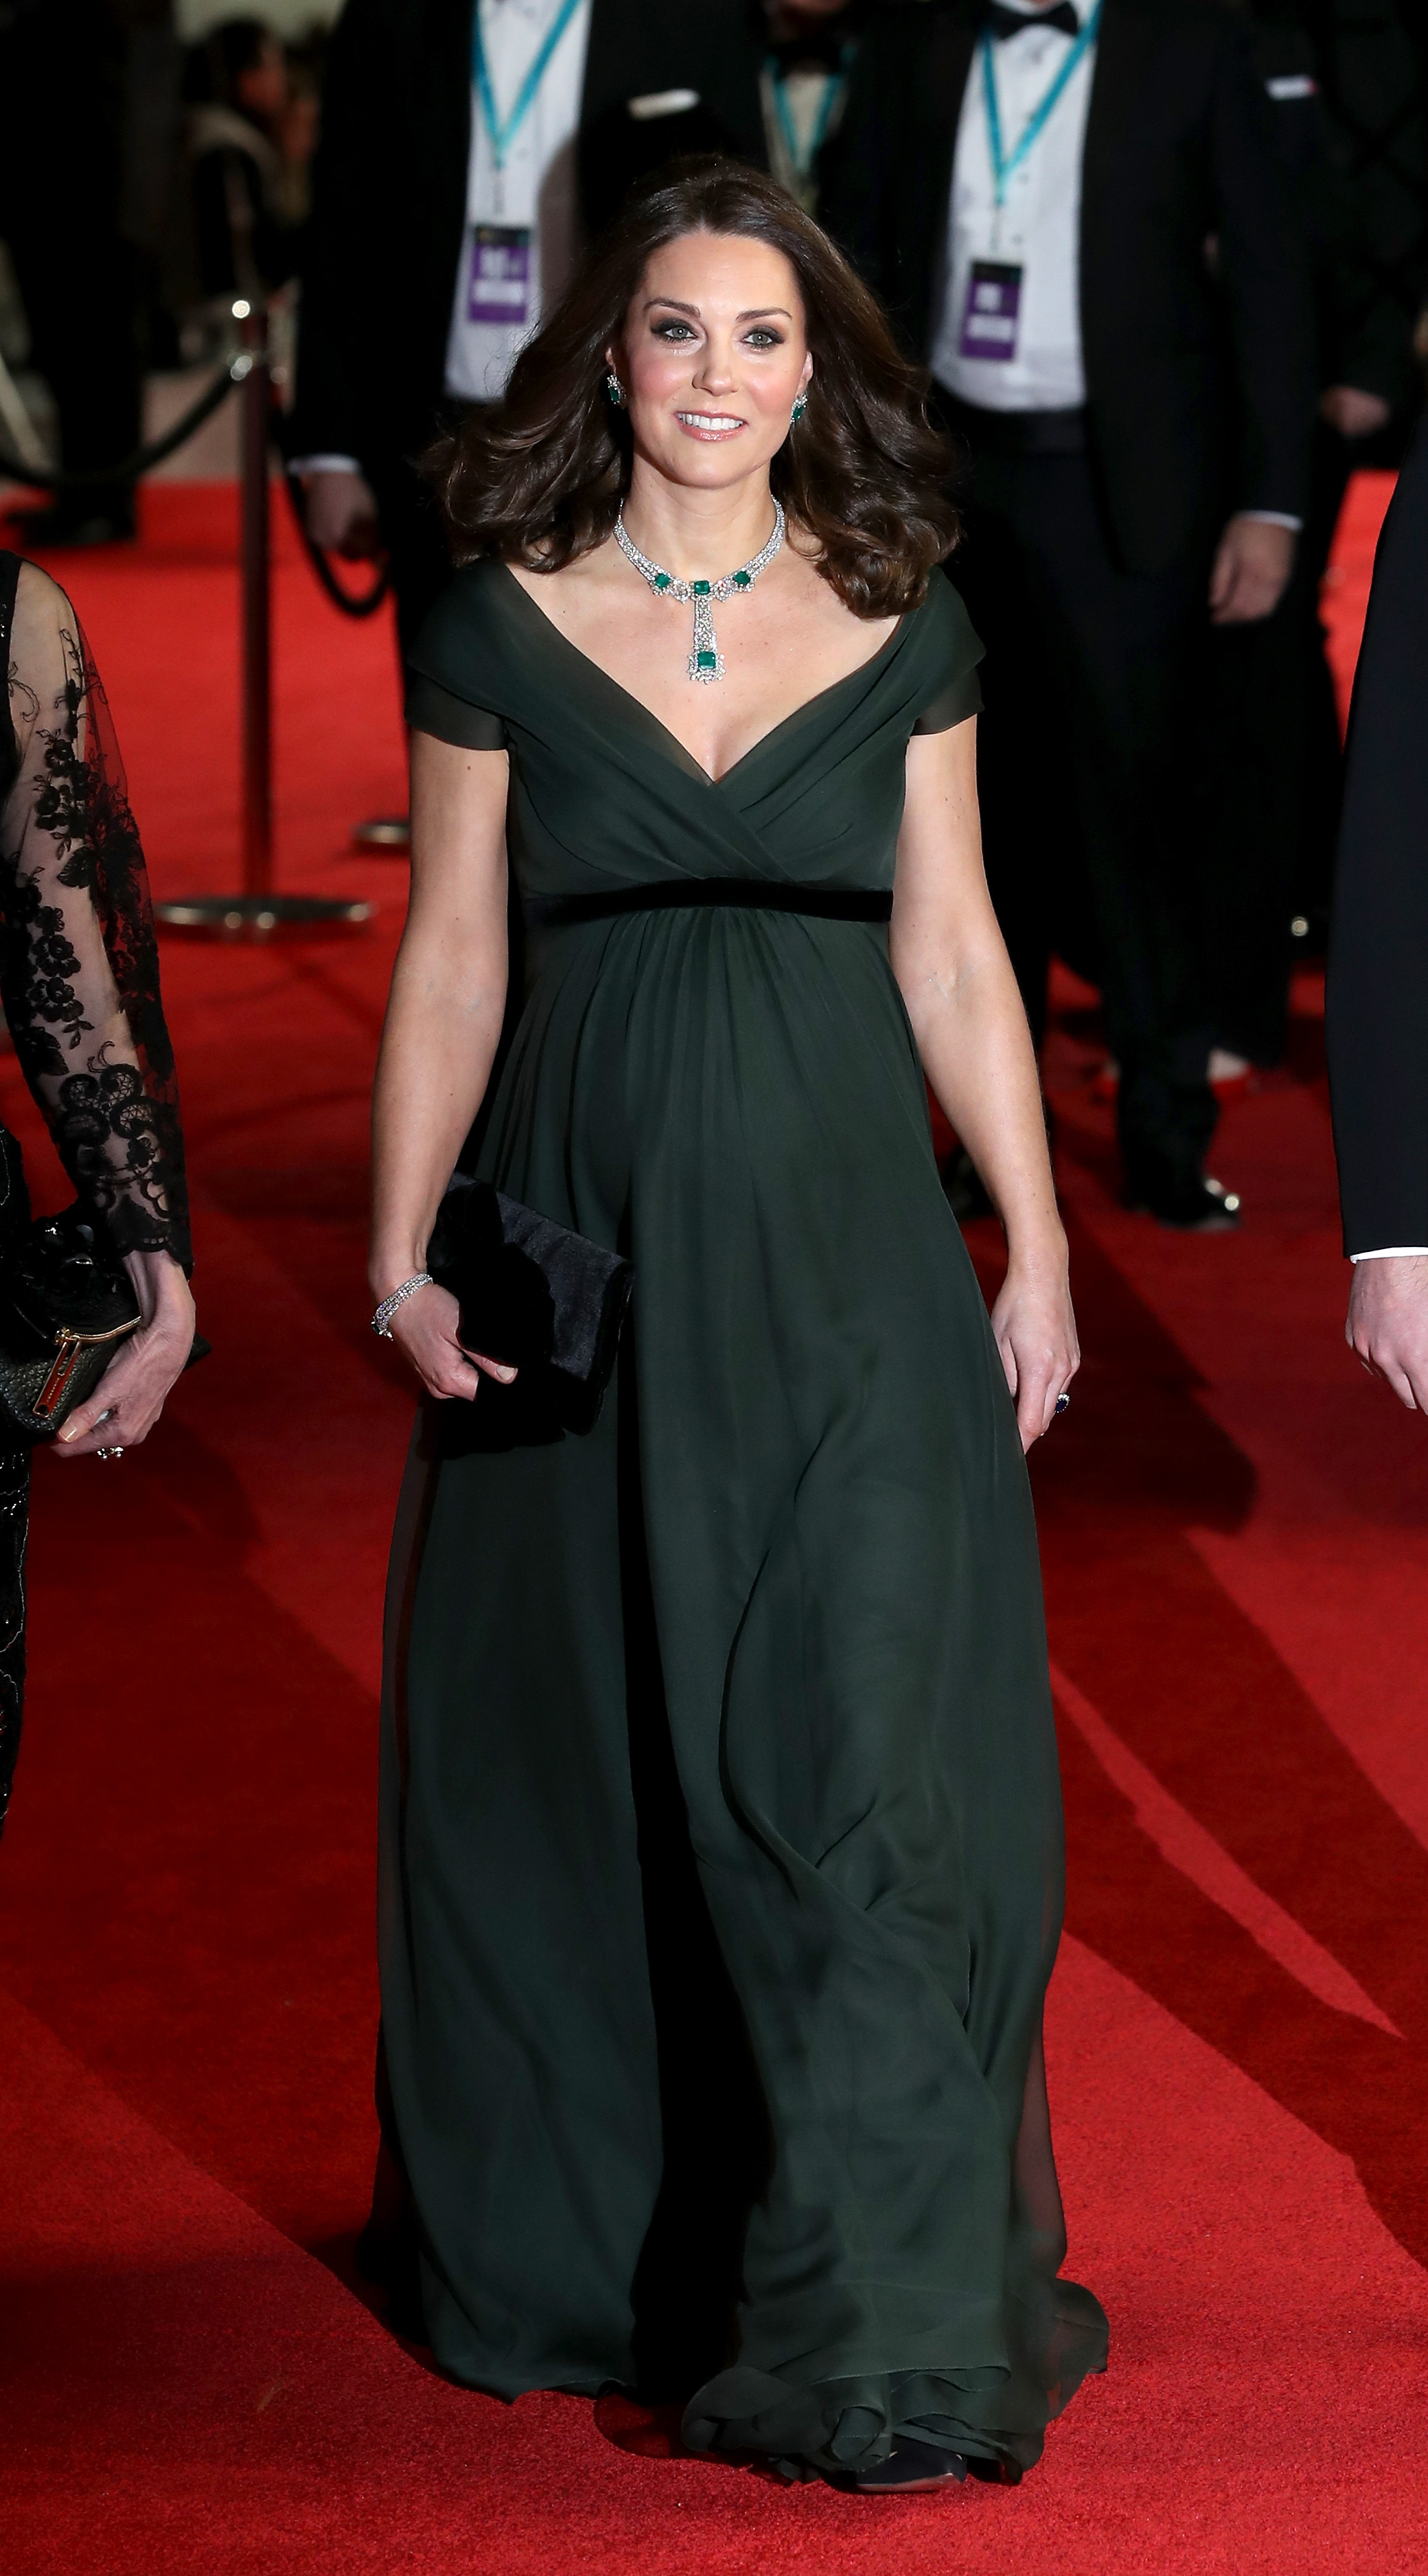 Kate Middleton Opts For Dark Green Jenny Packham Gown At The BAFTAs ... 134ef9ba2